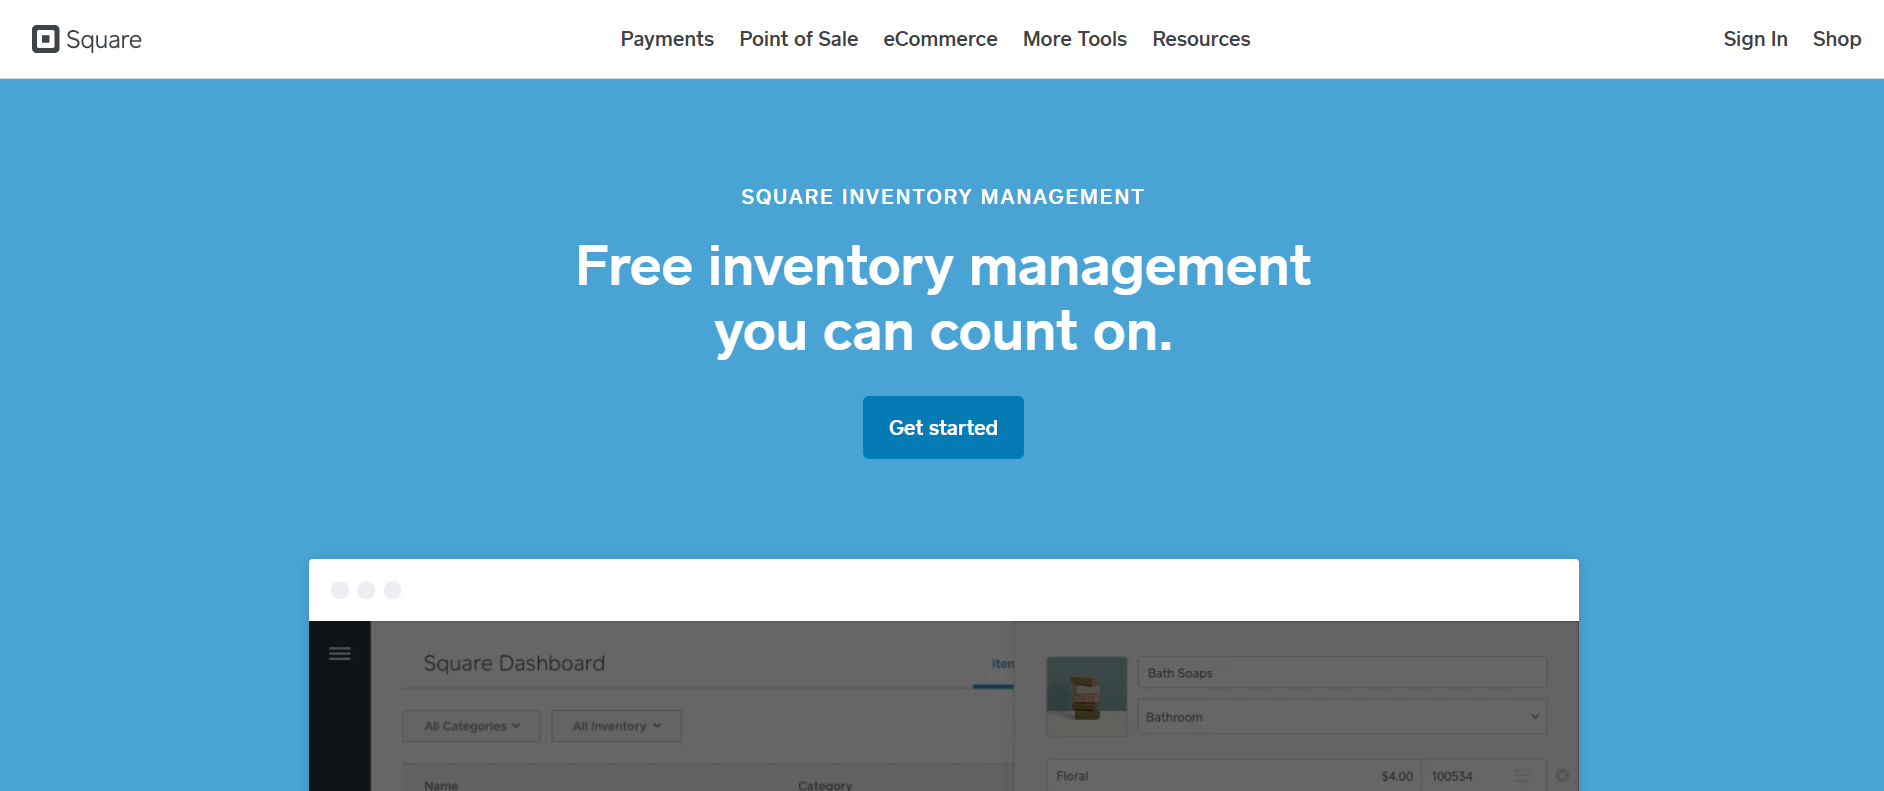 Square inventory management software